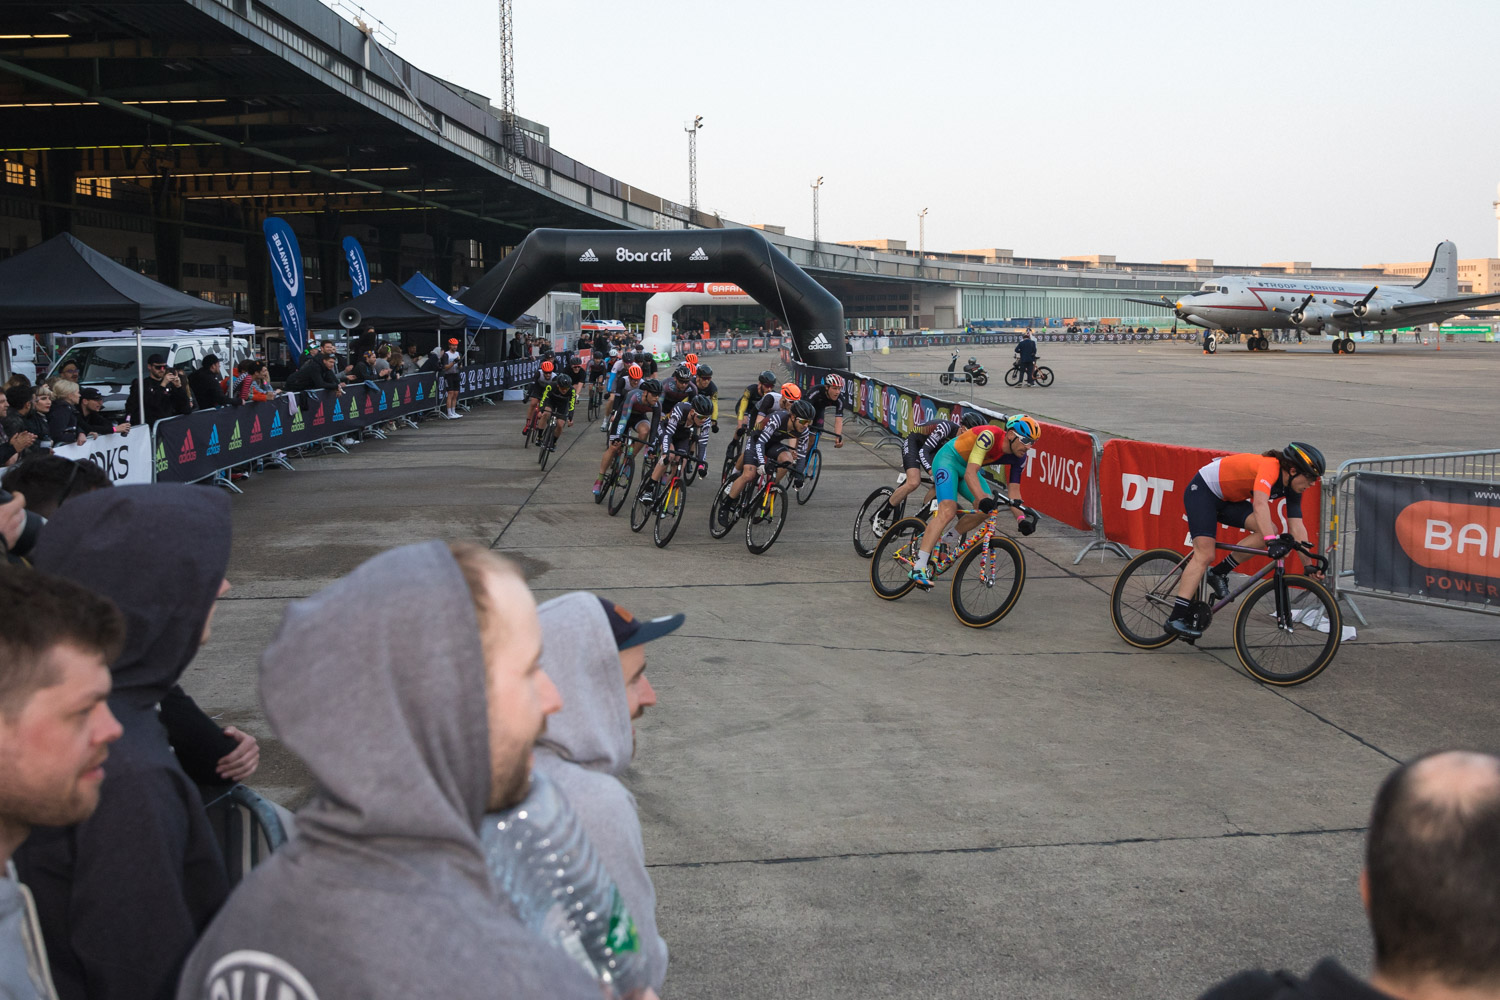 8barcrit 2018 fixed gear race-43